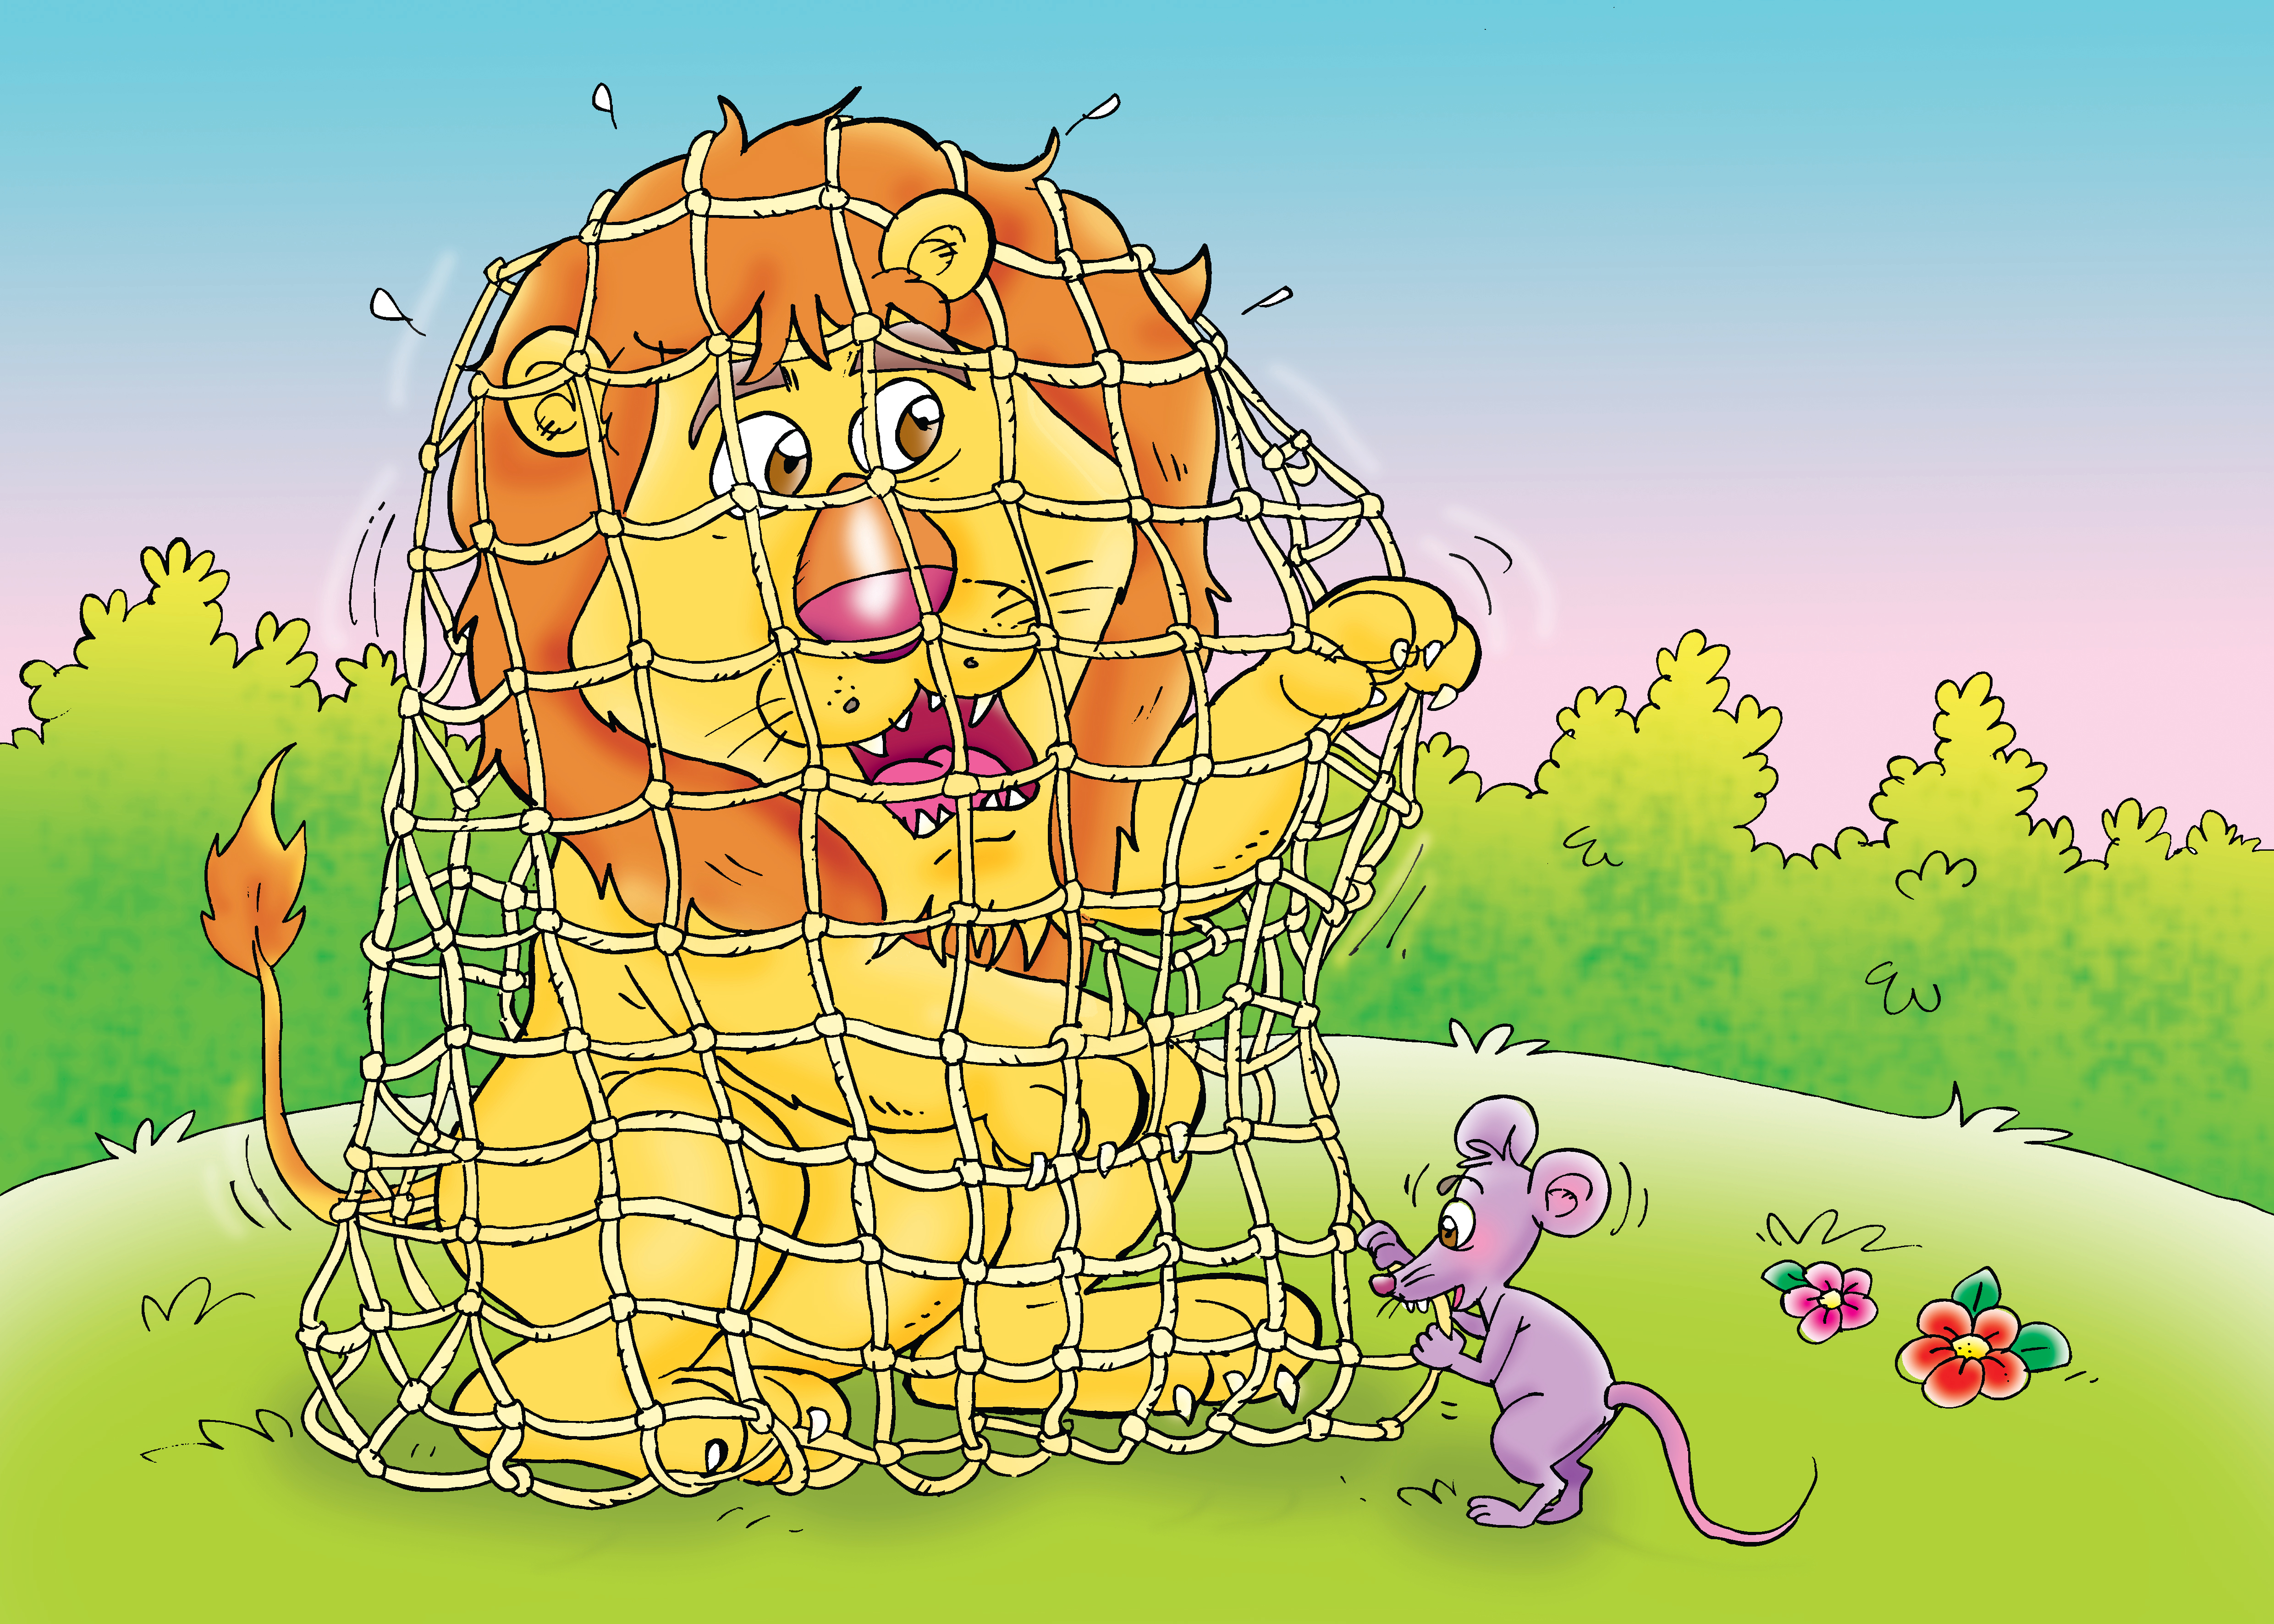 The mouse setting the lion free from the trap